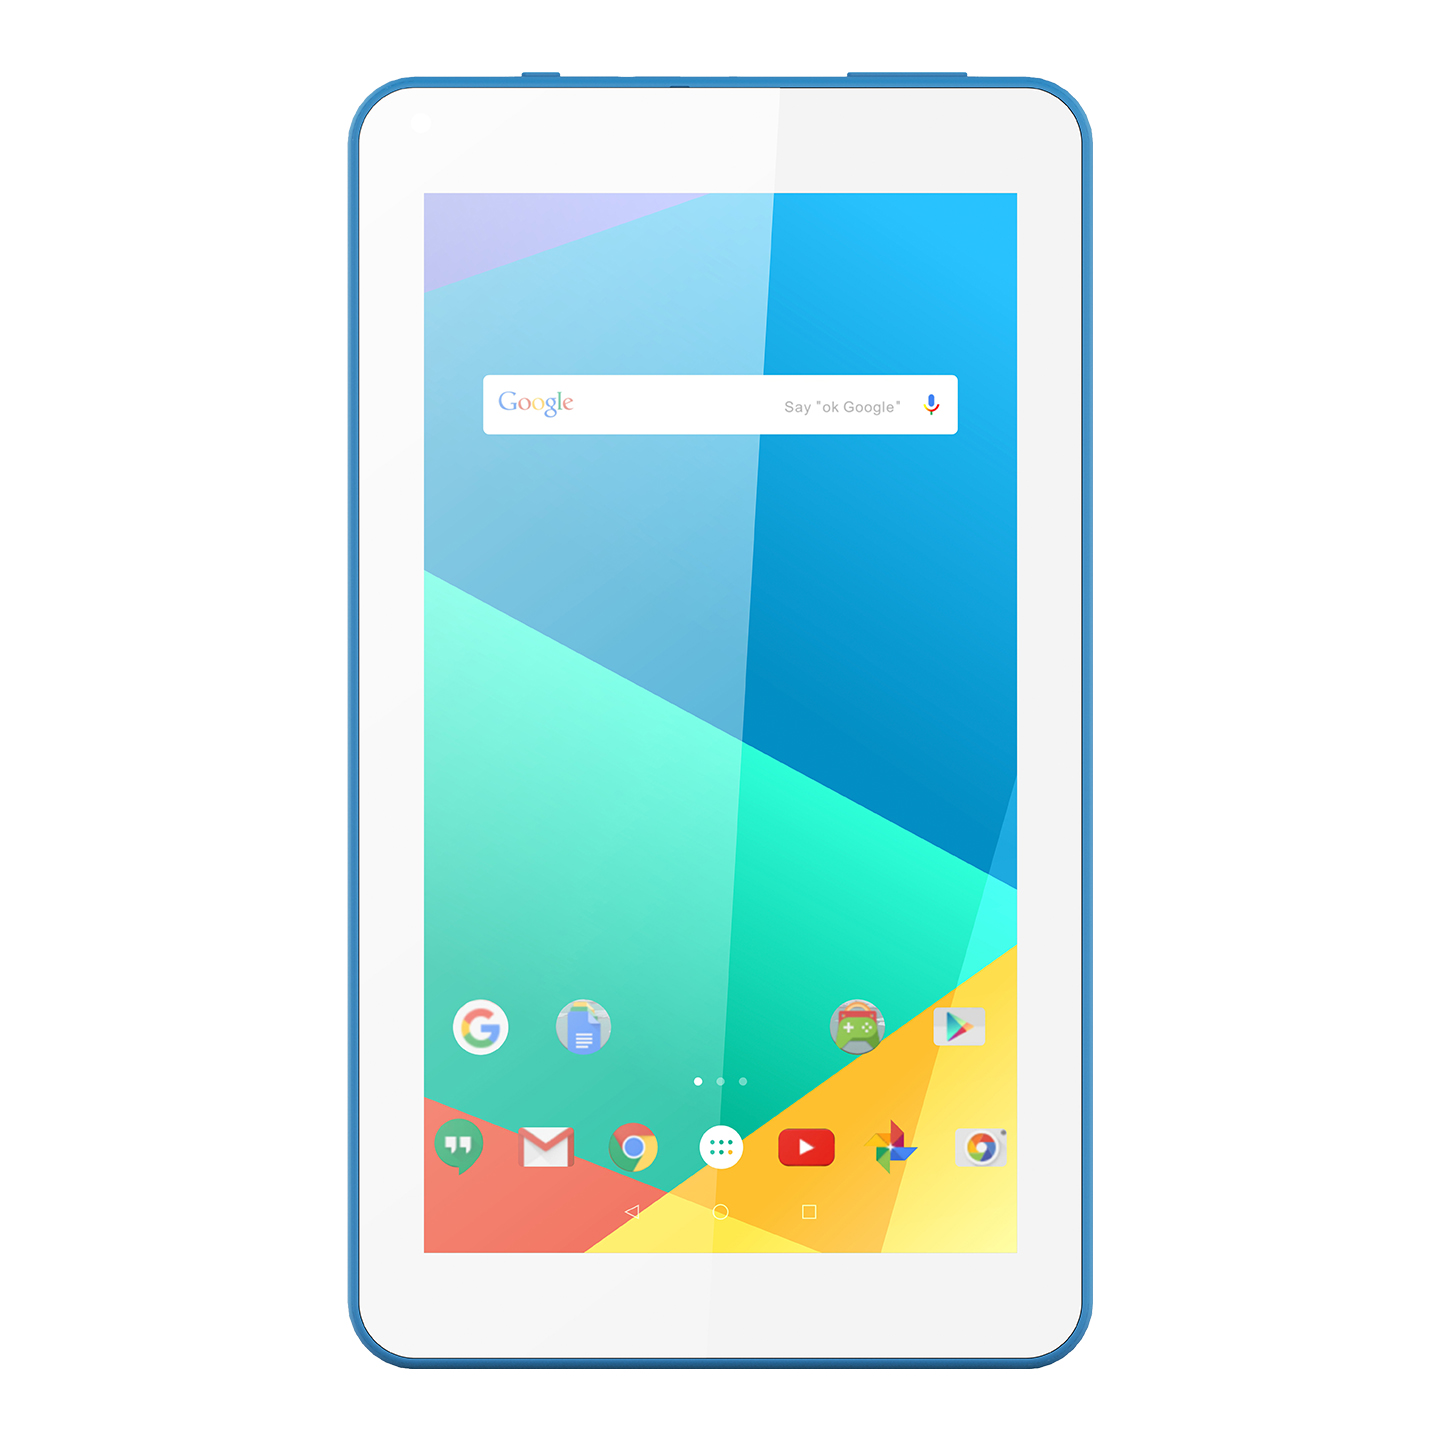 Everest WİNNER PRO EW-2021 Beyaz/Mavi Wifi+BT 2*Kamera 7 LCD Ekran A100 Quard Core 2GB+16GB And.10 OS Tablet PC